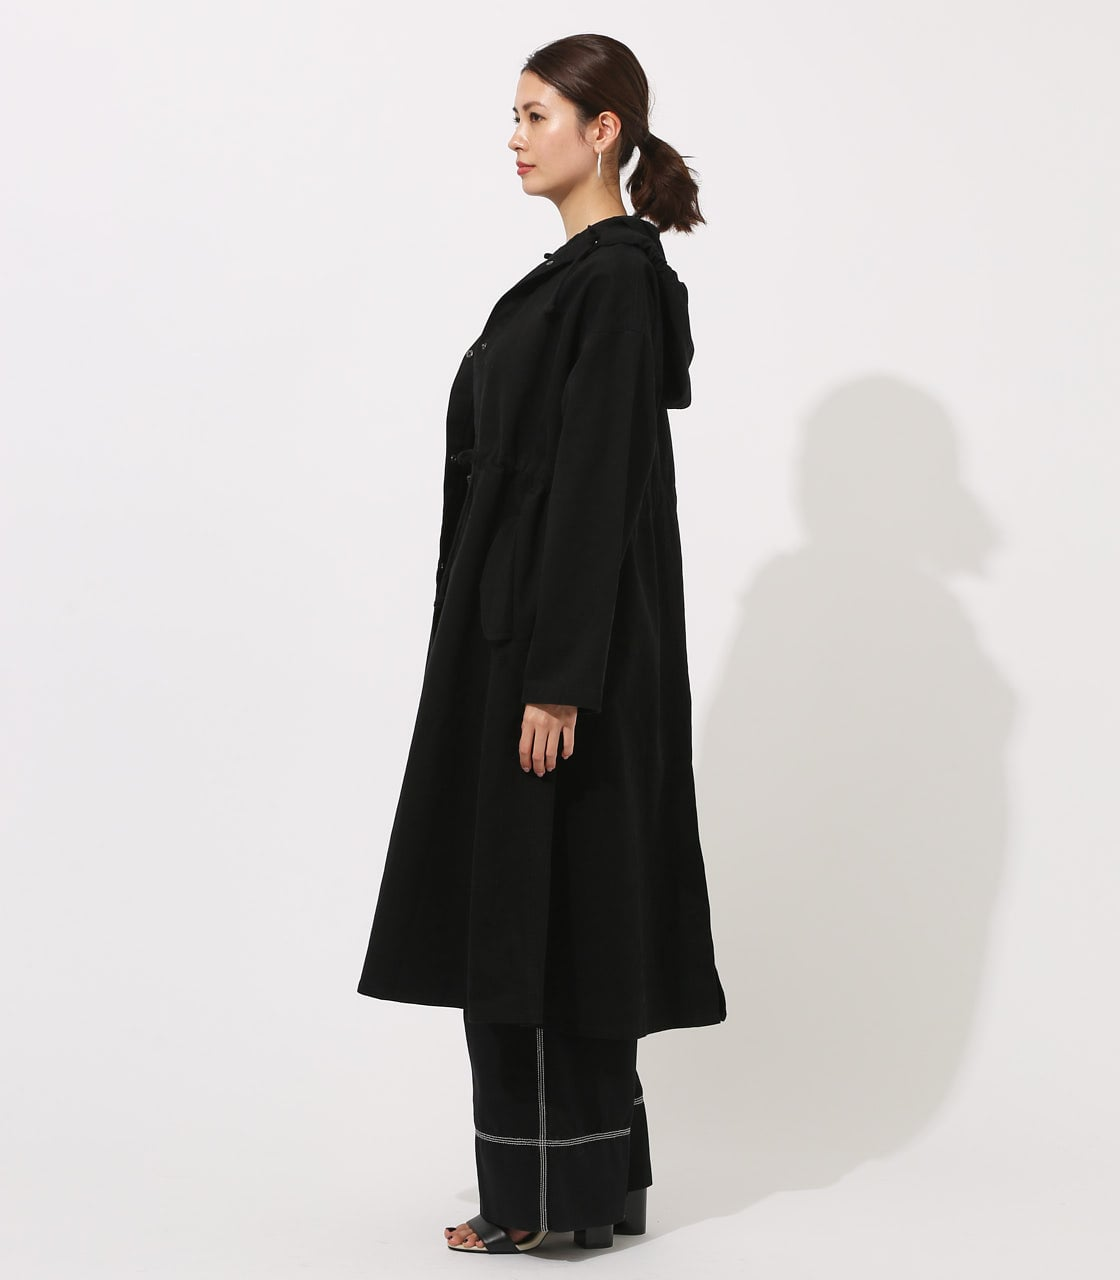 【AZUL BY MOUSSY】LOOSE MODS COAT 【MOOK49掲載 90044】 詳細画像 BLK 6